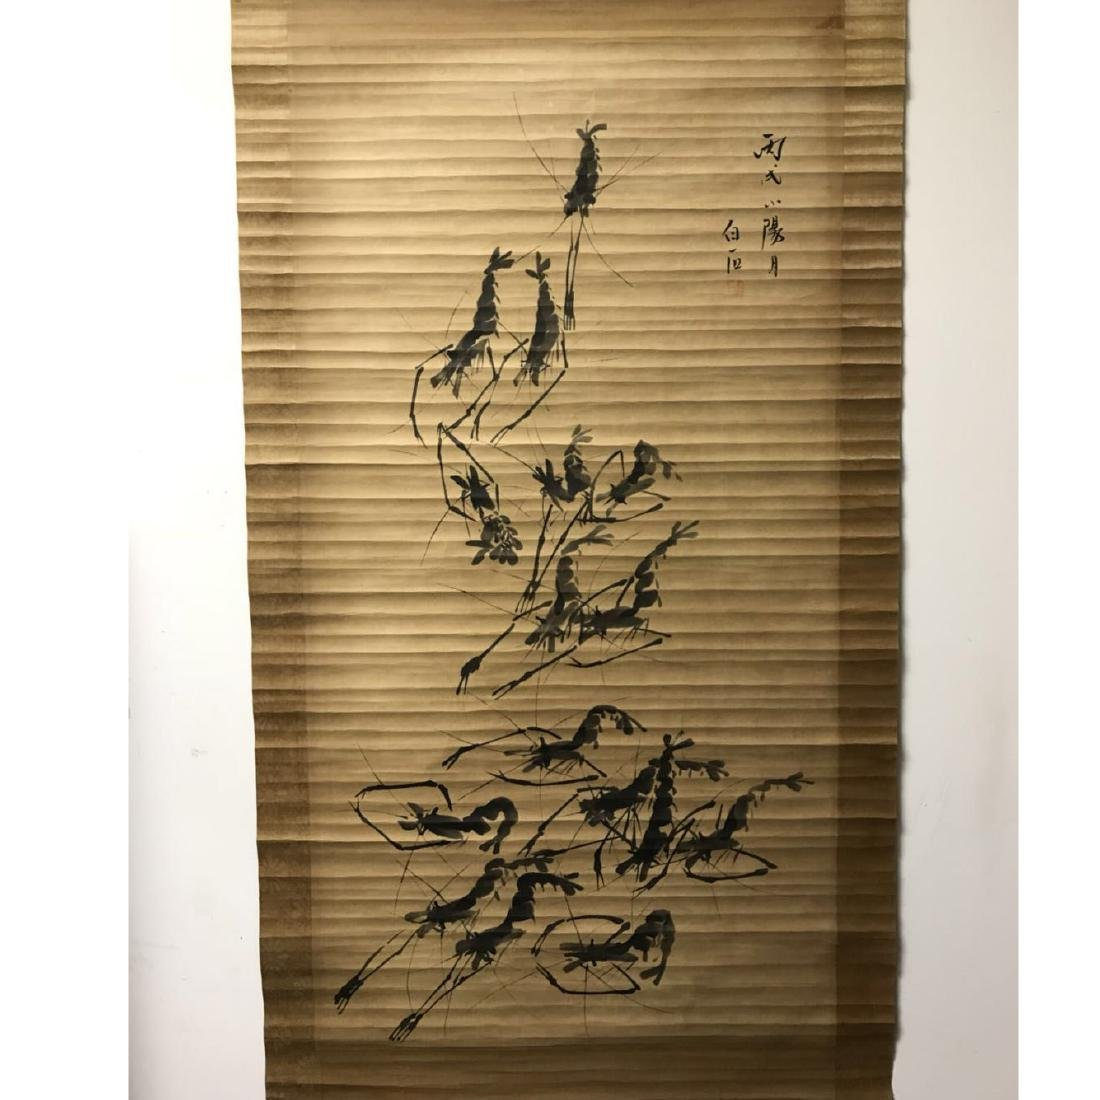 Scroll Painting: Playful Shrimps Mark Bai Shi